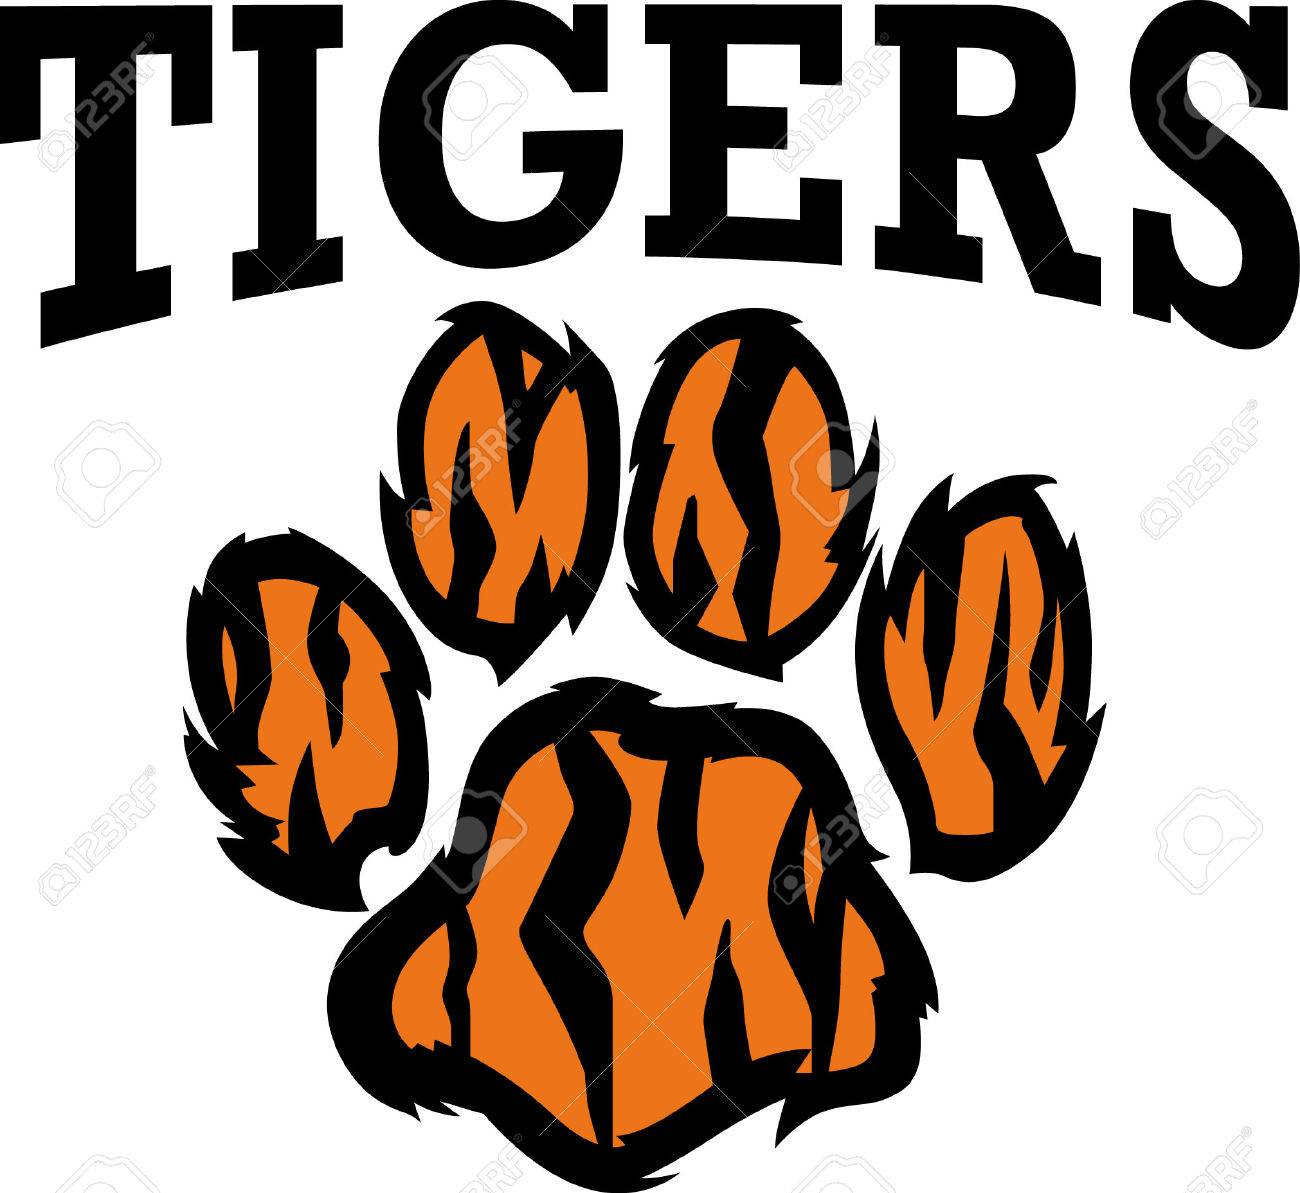 Show Your Team Spirit With This Tiger Paw Logo. Everyone Will ...